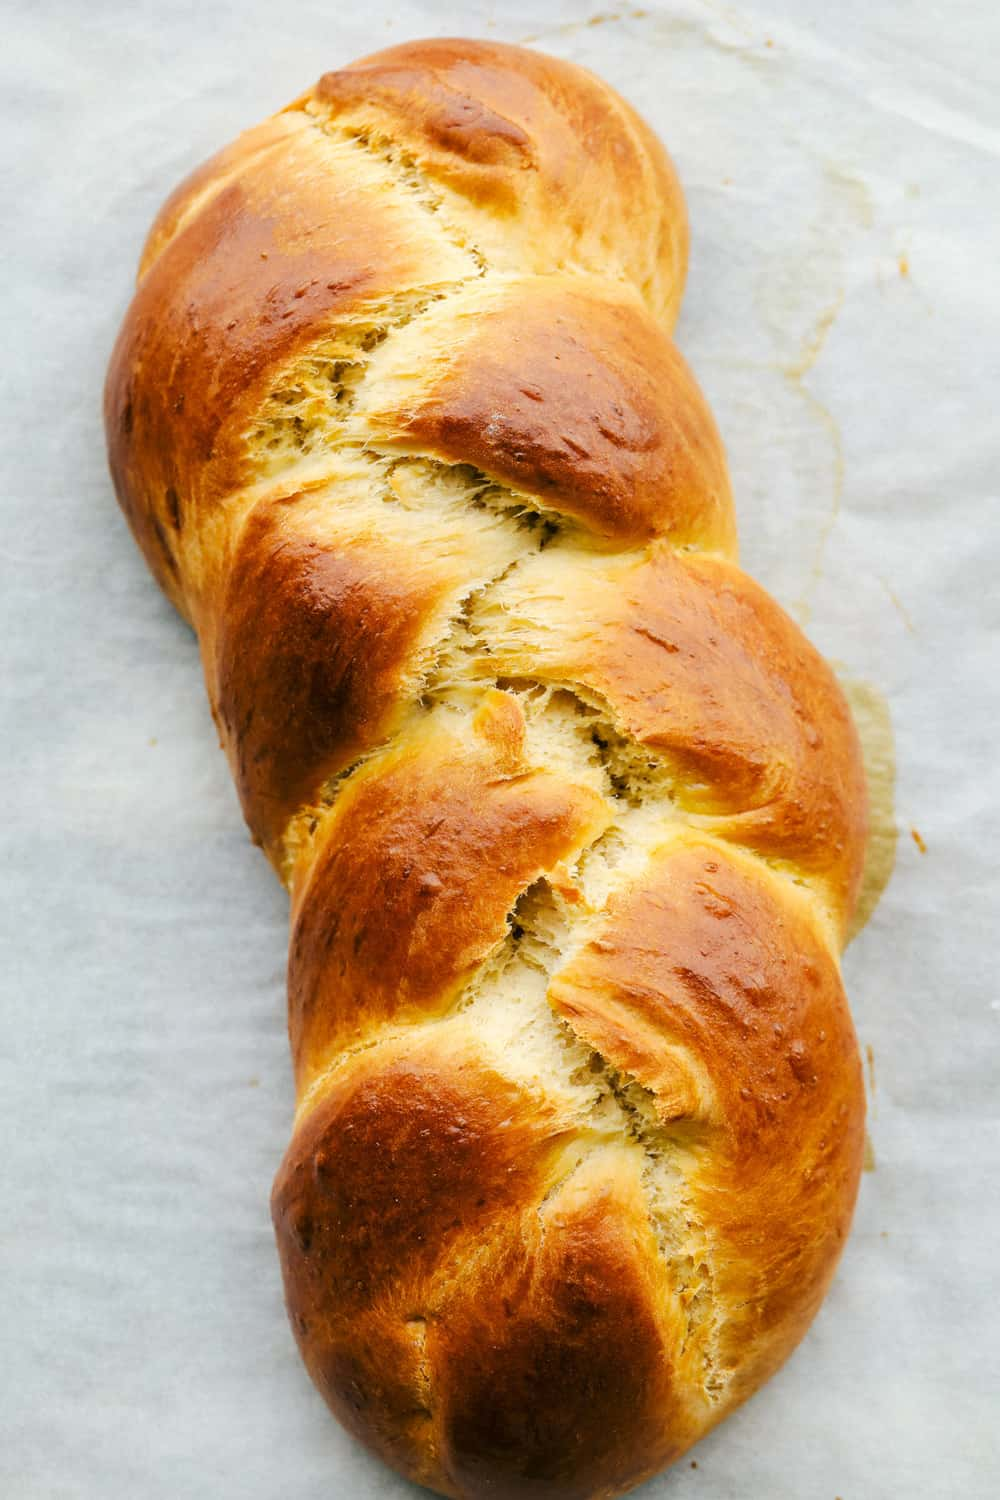 Golden brown baked challah bread.